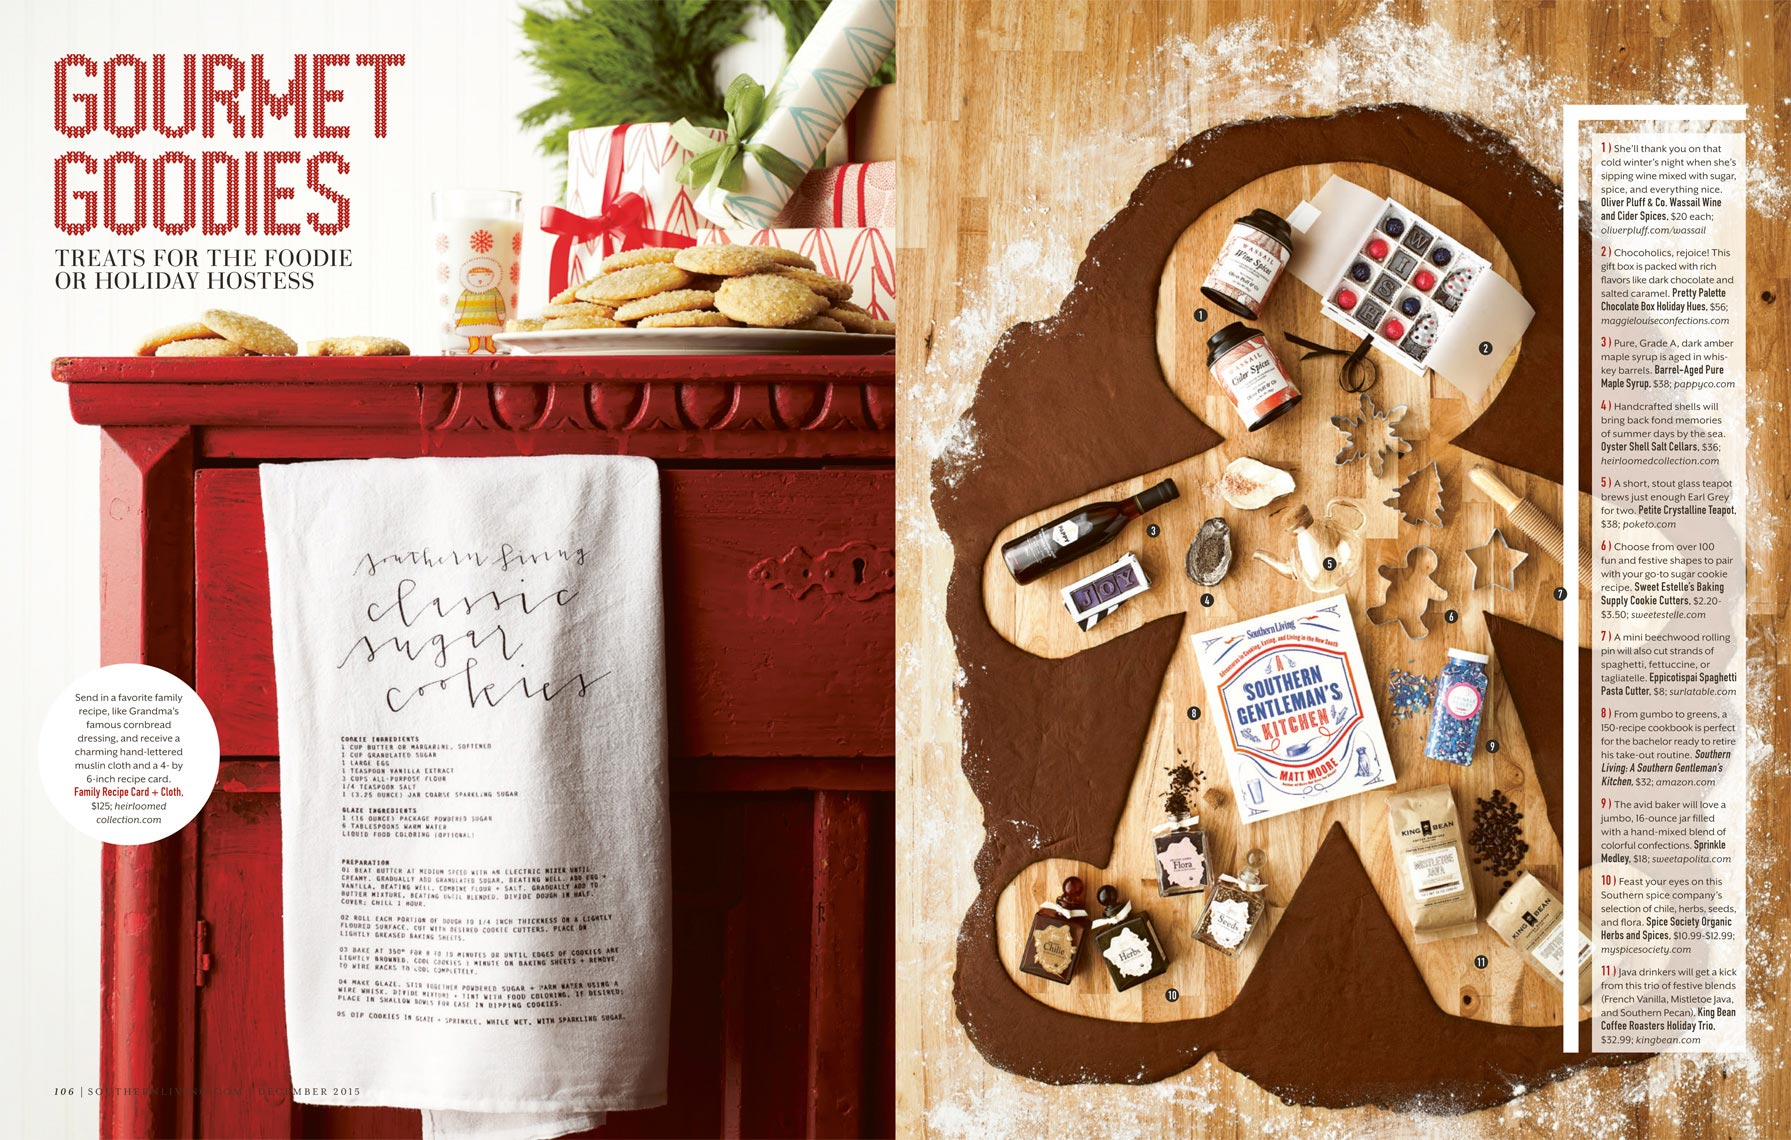 SOUTHERN LIVING XMAS GUIDE 2015